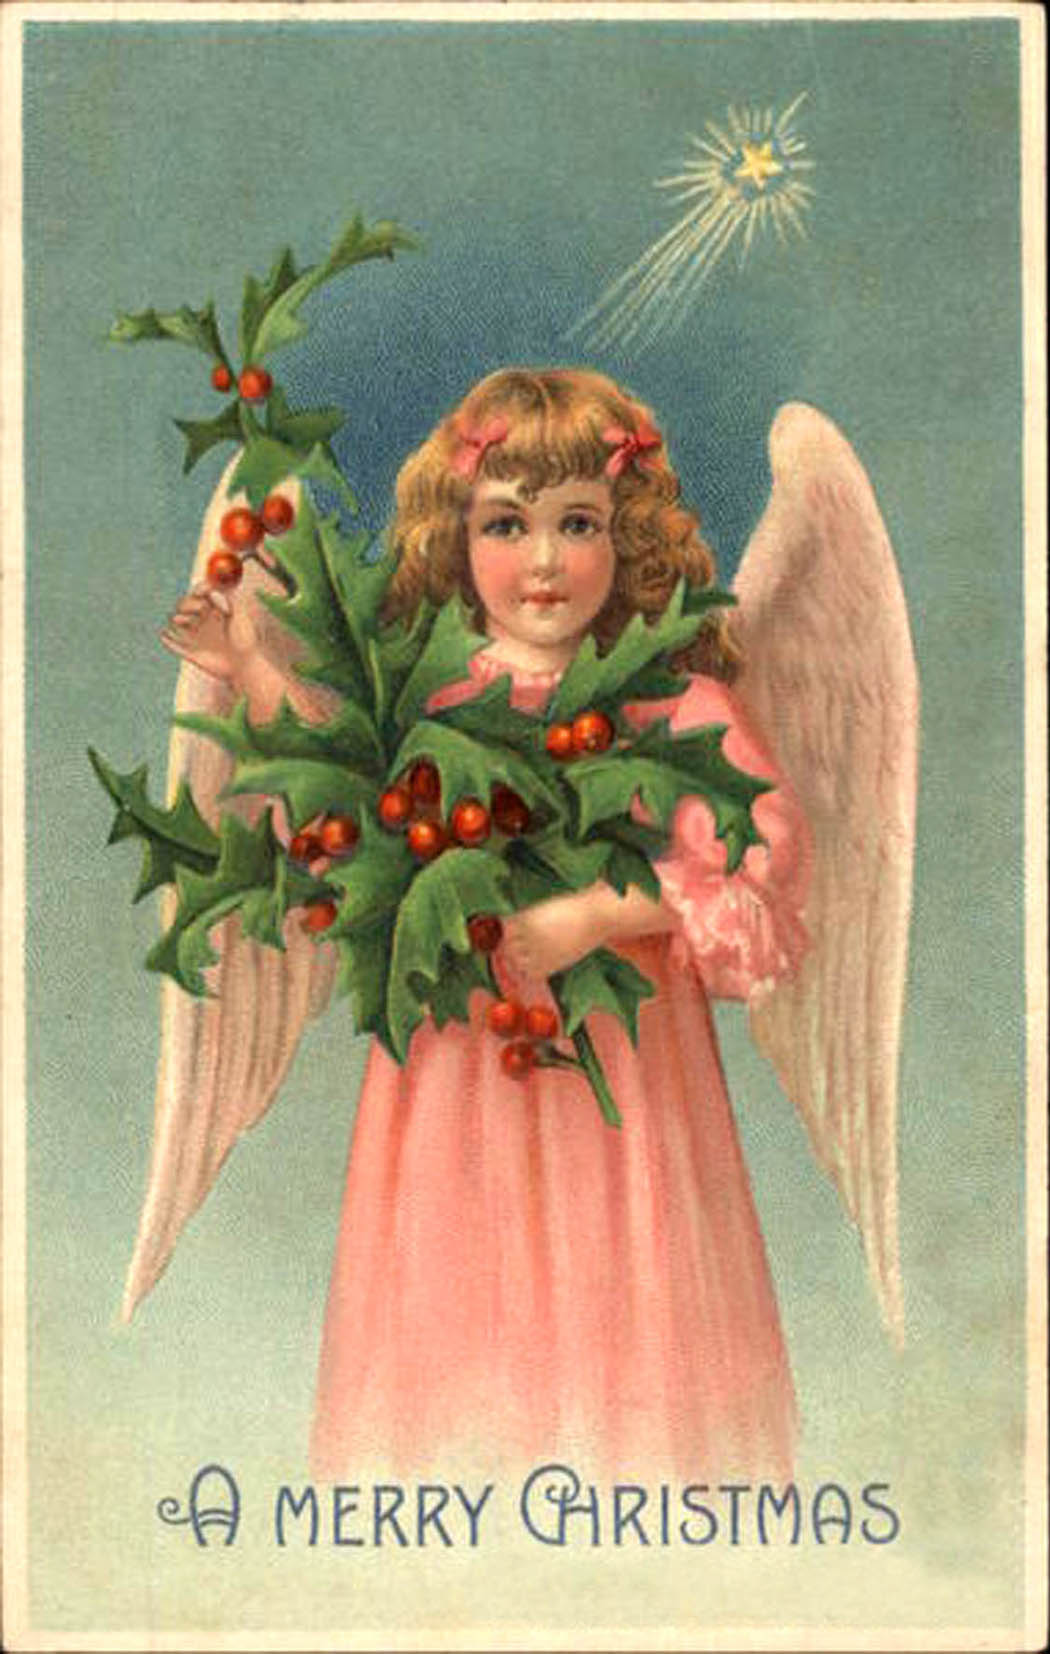 Card of an angel girl in pink dress holding a holly branch and star shining down from above